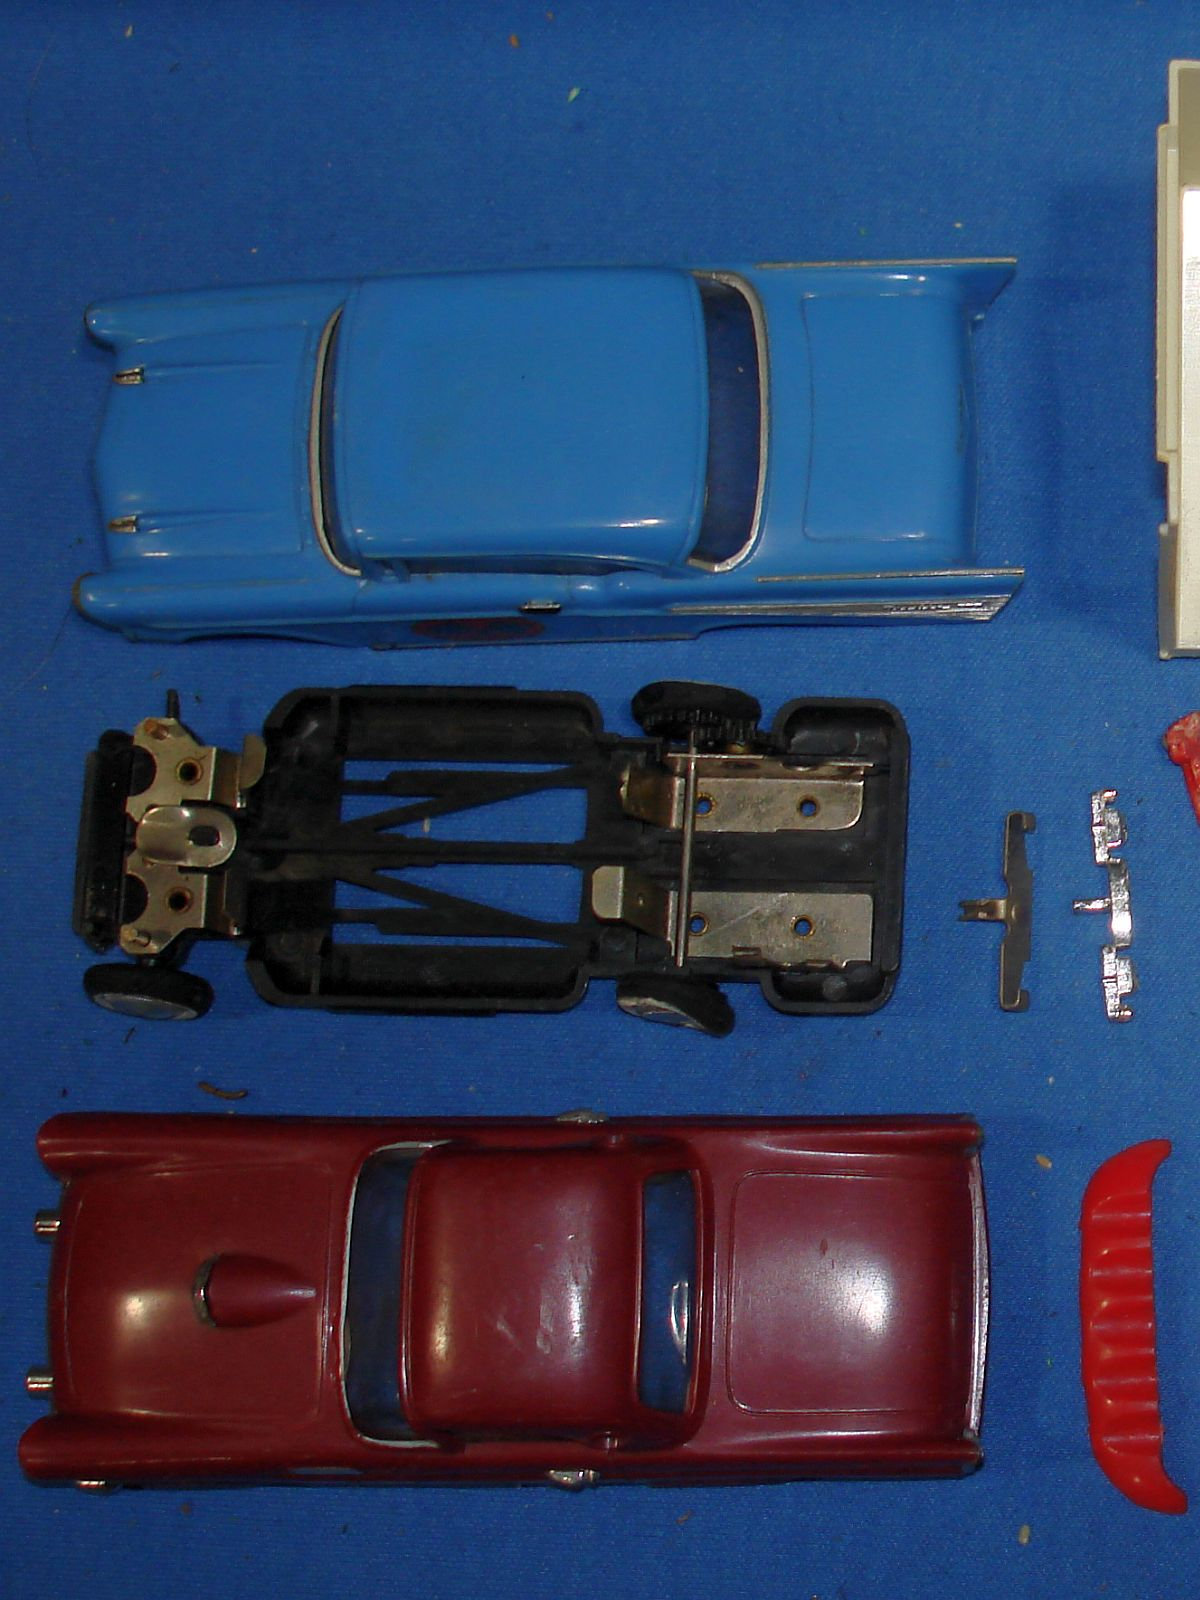 Sears Motorific Super Torture Track Set Ideal Toy #492001 Ford Thunderbird 1957 Chevy Belair Chassis Motors